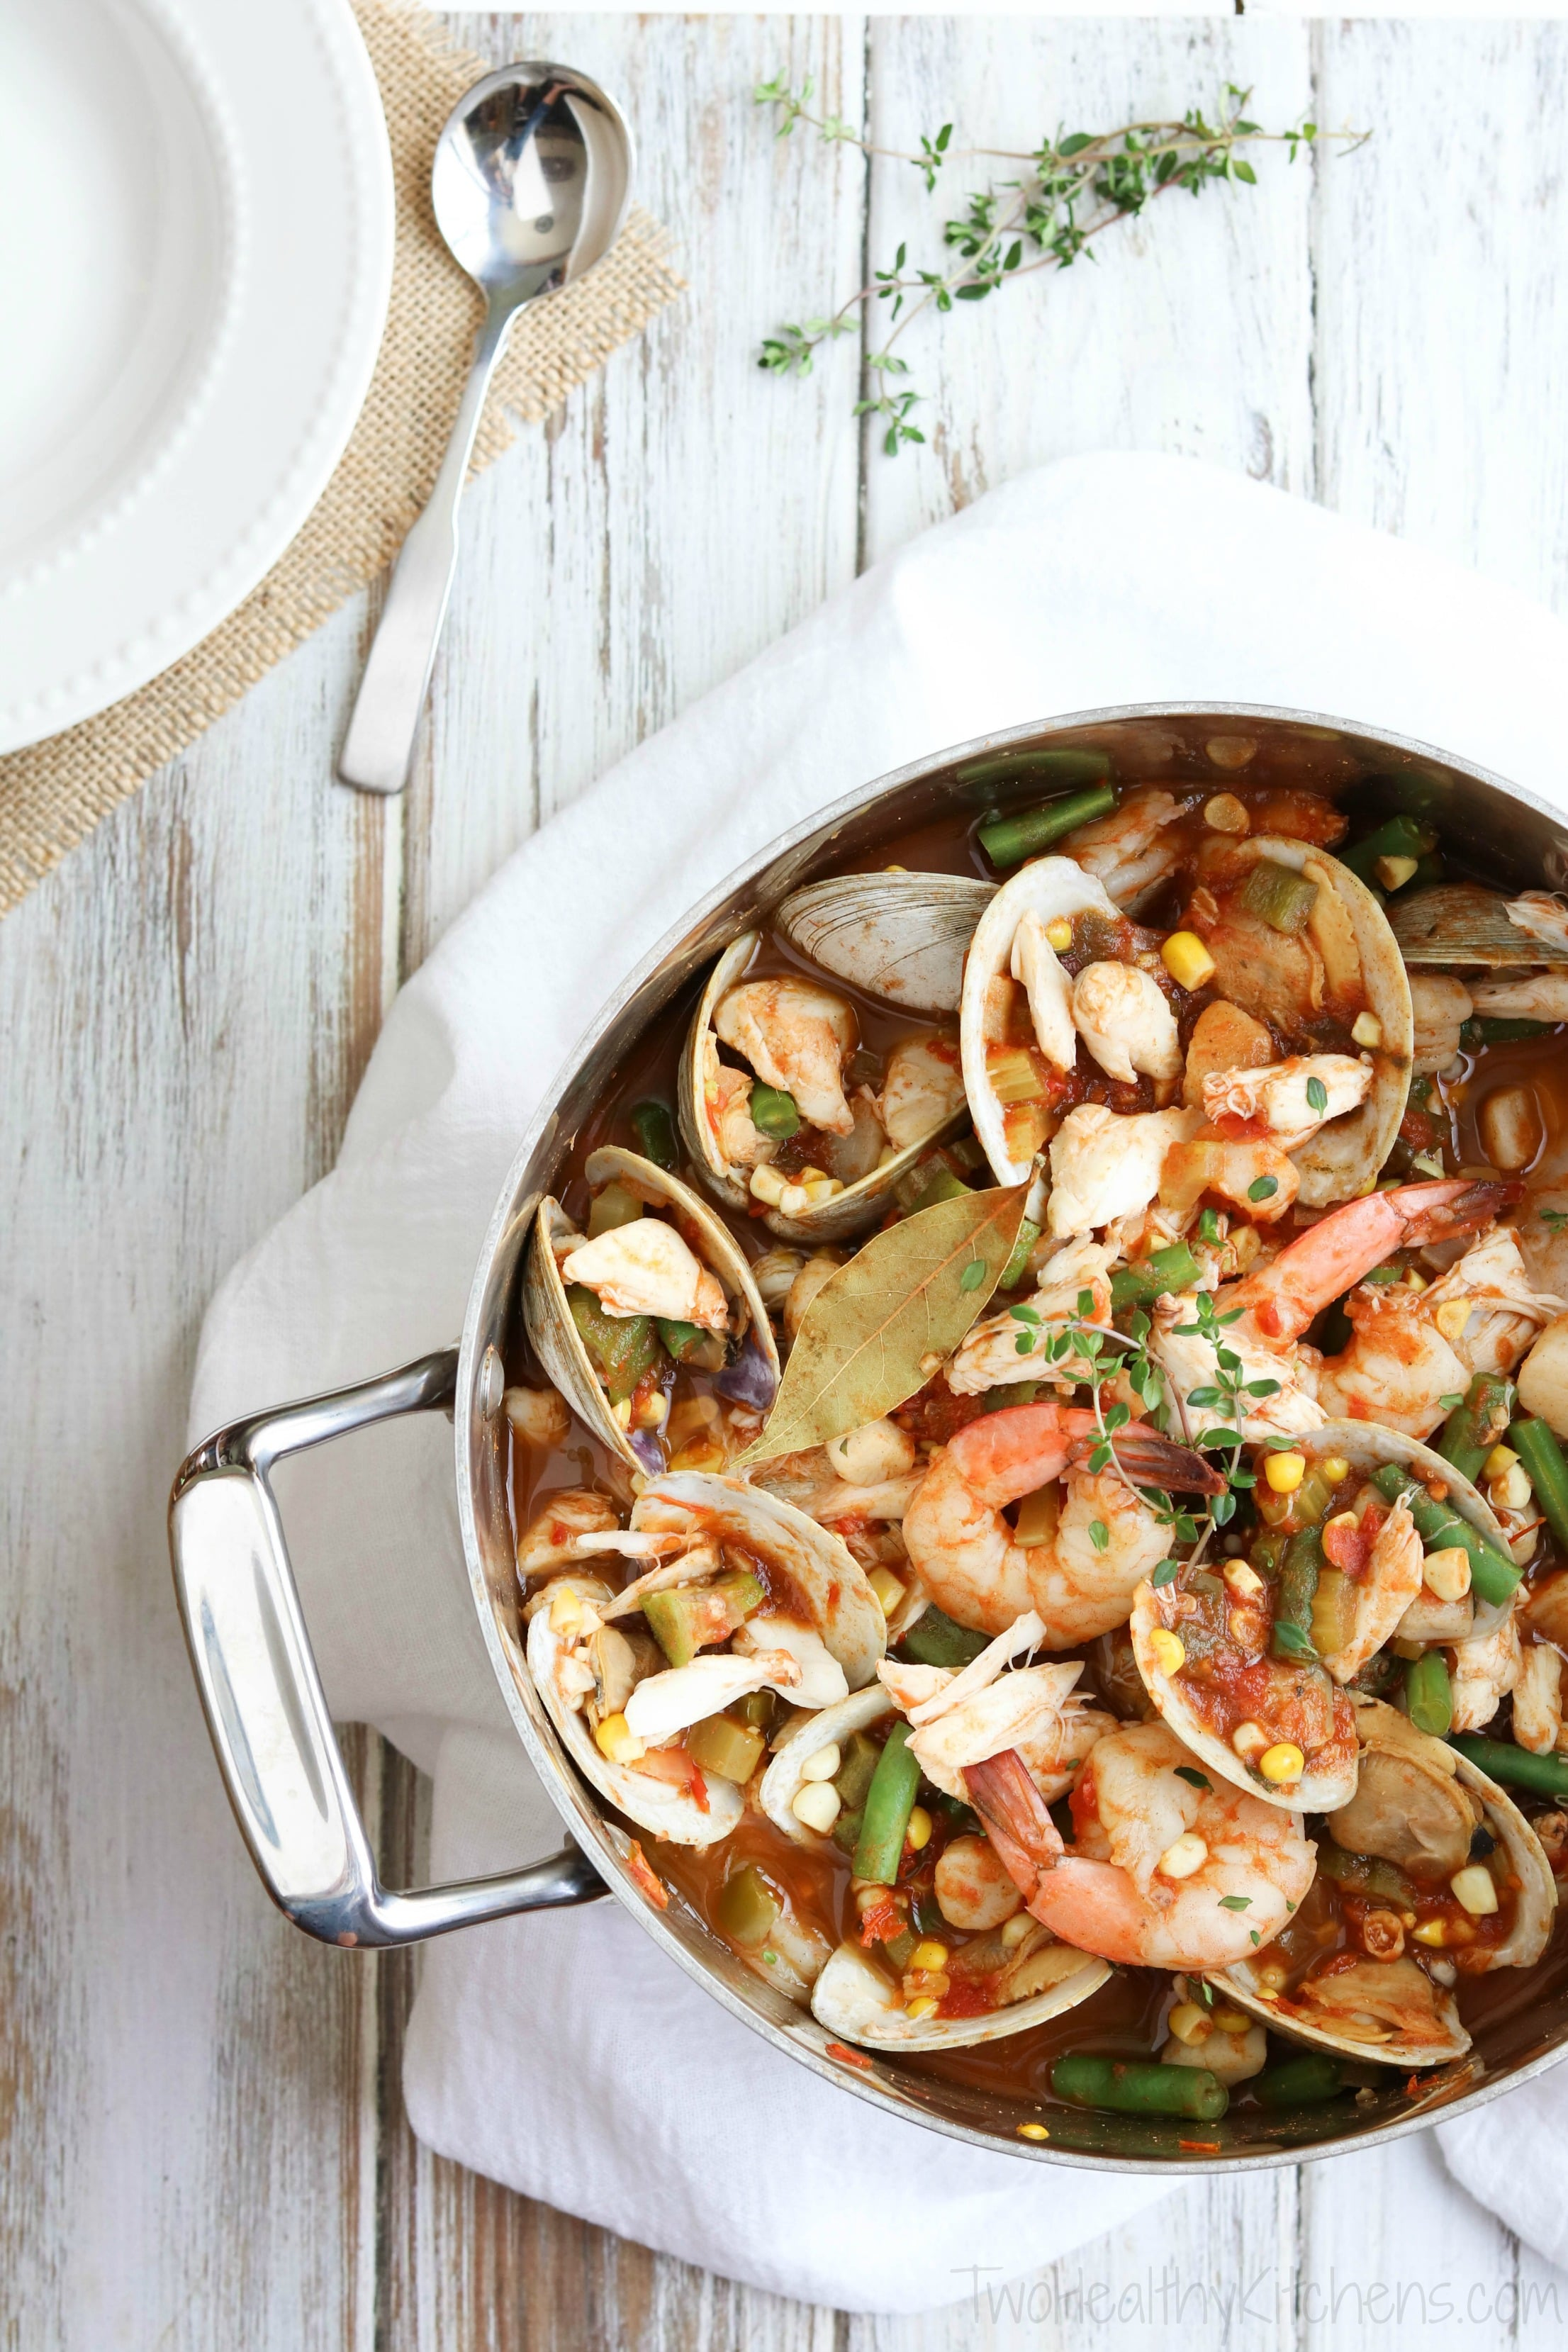 This Sea Island Seafood Stew is a showstopper for dinner parties! But with lots of make-ahead steps, it's also an easy family meal ... perfect when you need a little bit of beach in your life! It's a mainstay on the menu at the hugely popular Skull Creek Boathouse in Hilton Head, South Carolina.   www.TwoHealthyKitchens.com